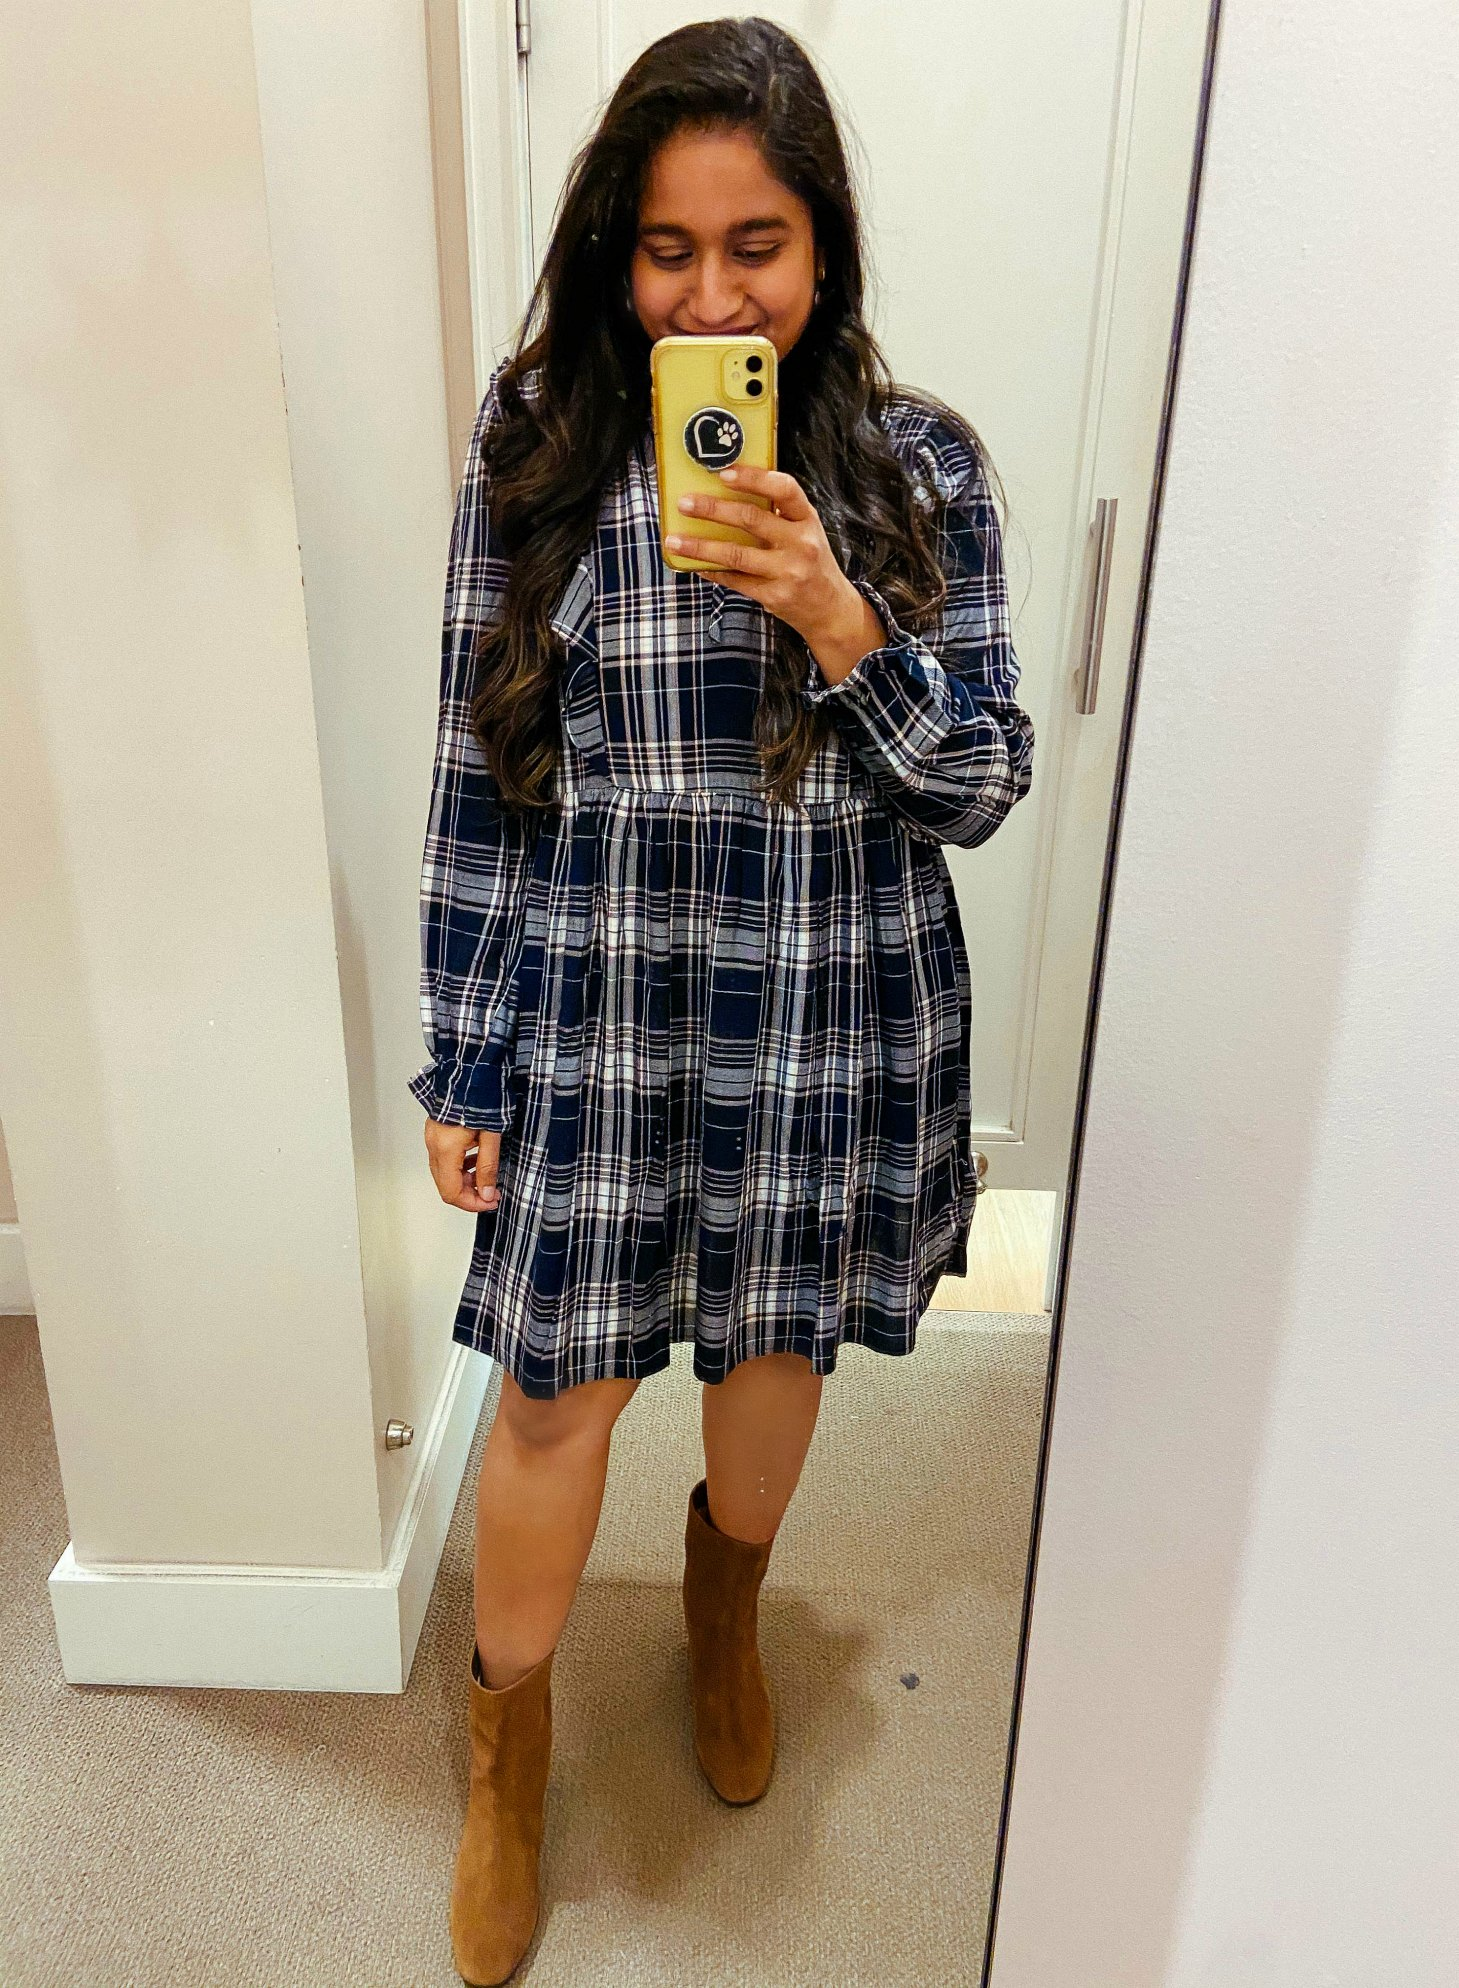 Loft Plaid Ruffle Swing Dress. J.crew Suede Ankle boots | Fall Clothing by popular Maryland modest fashion blog, Dreaming Loud: image of a woman wearing a Loft Plaid Ruffle Swing Dress. and J.crew Suede Ankle boots.